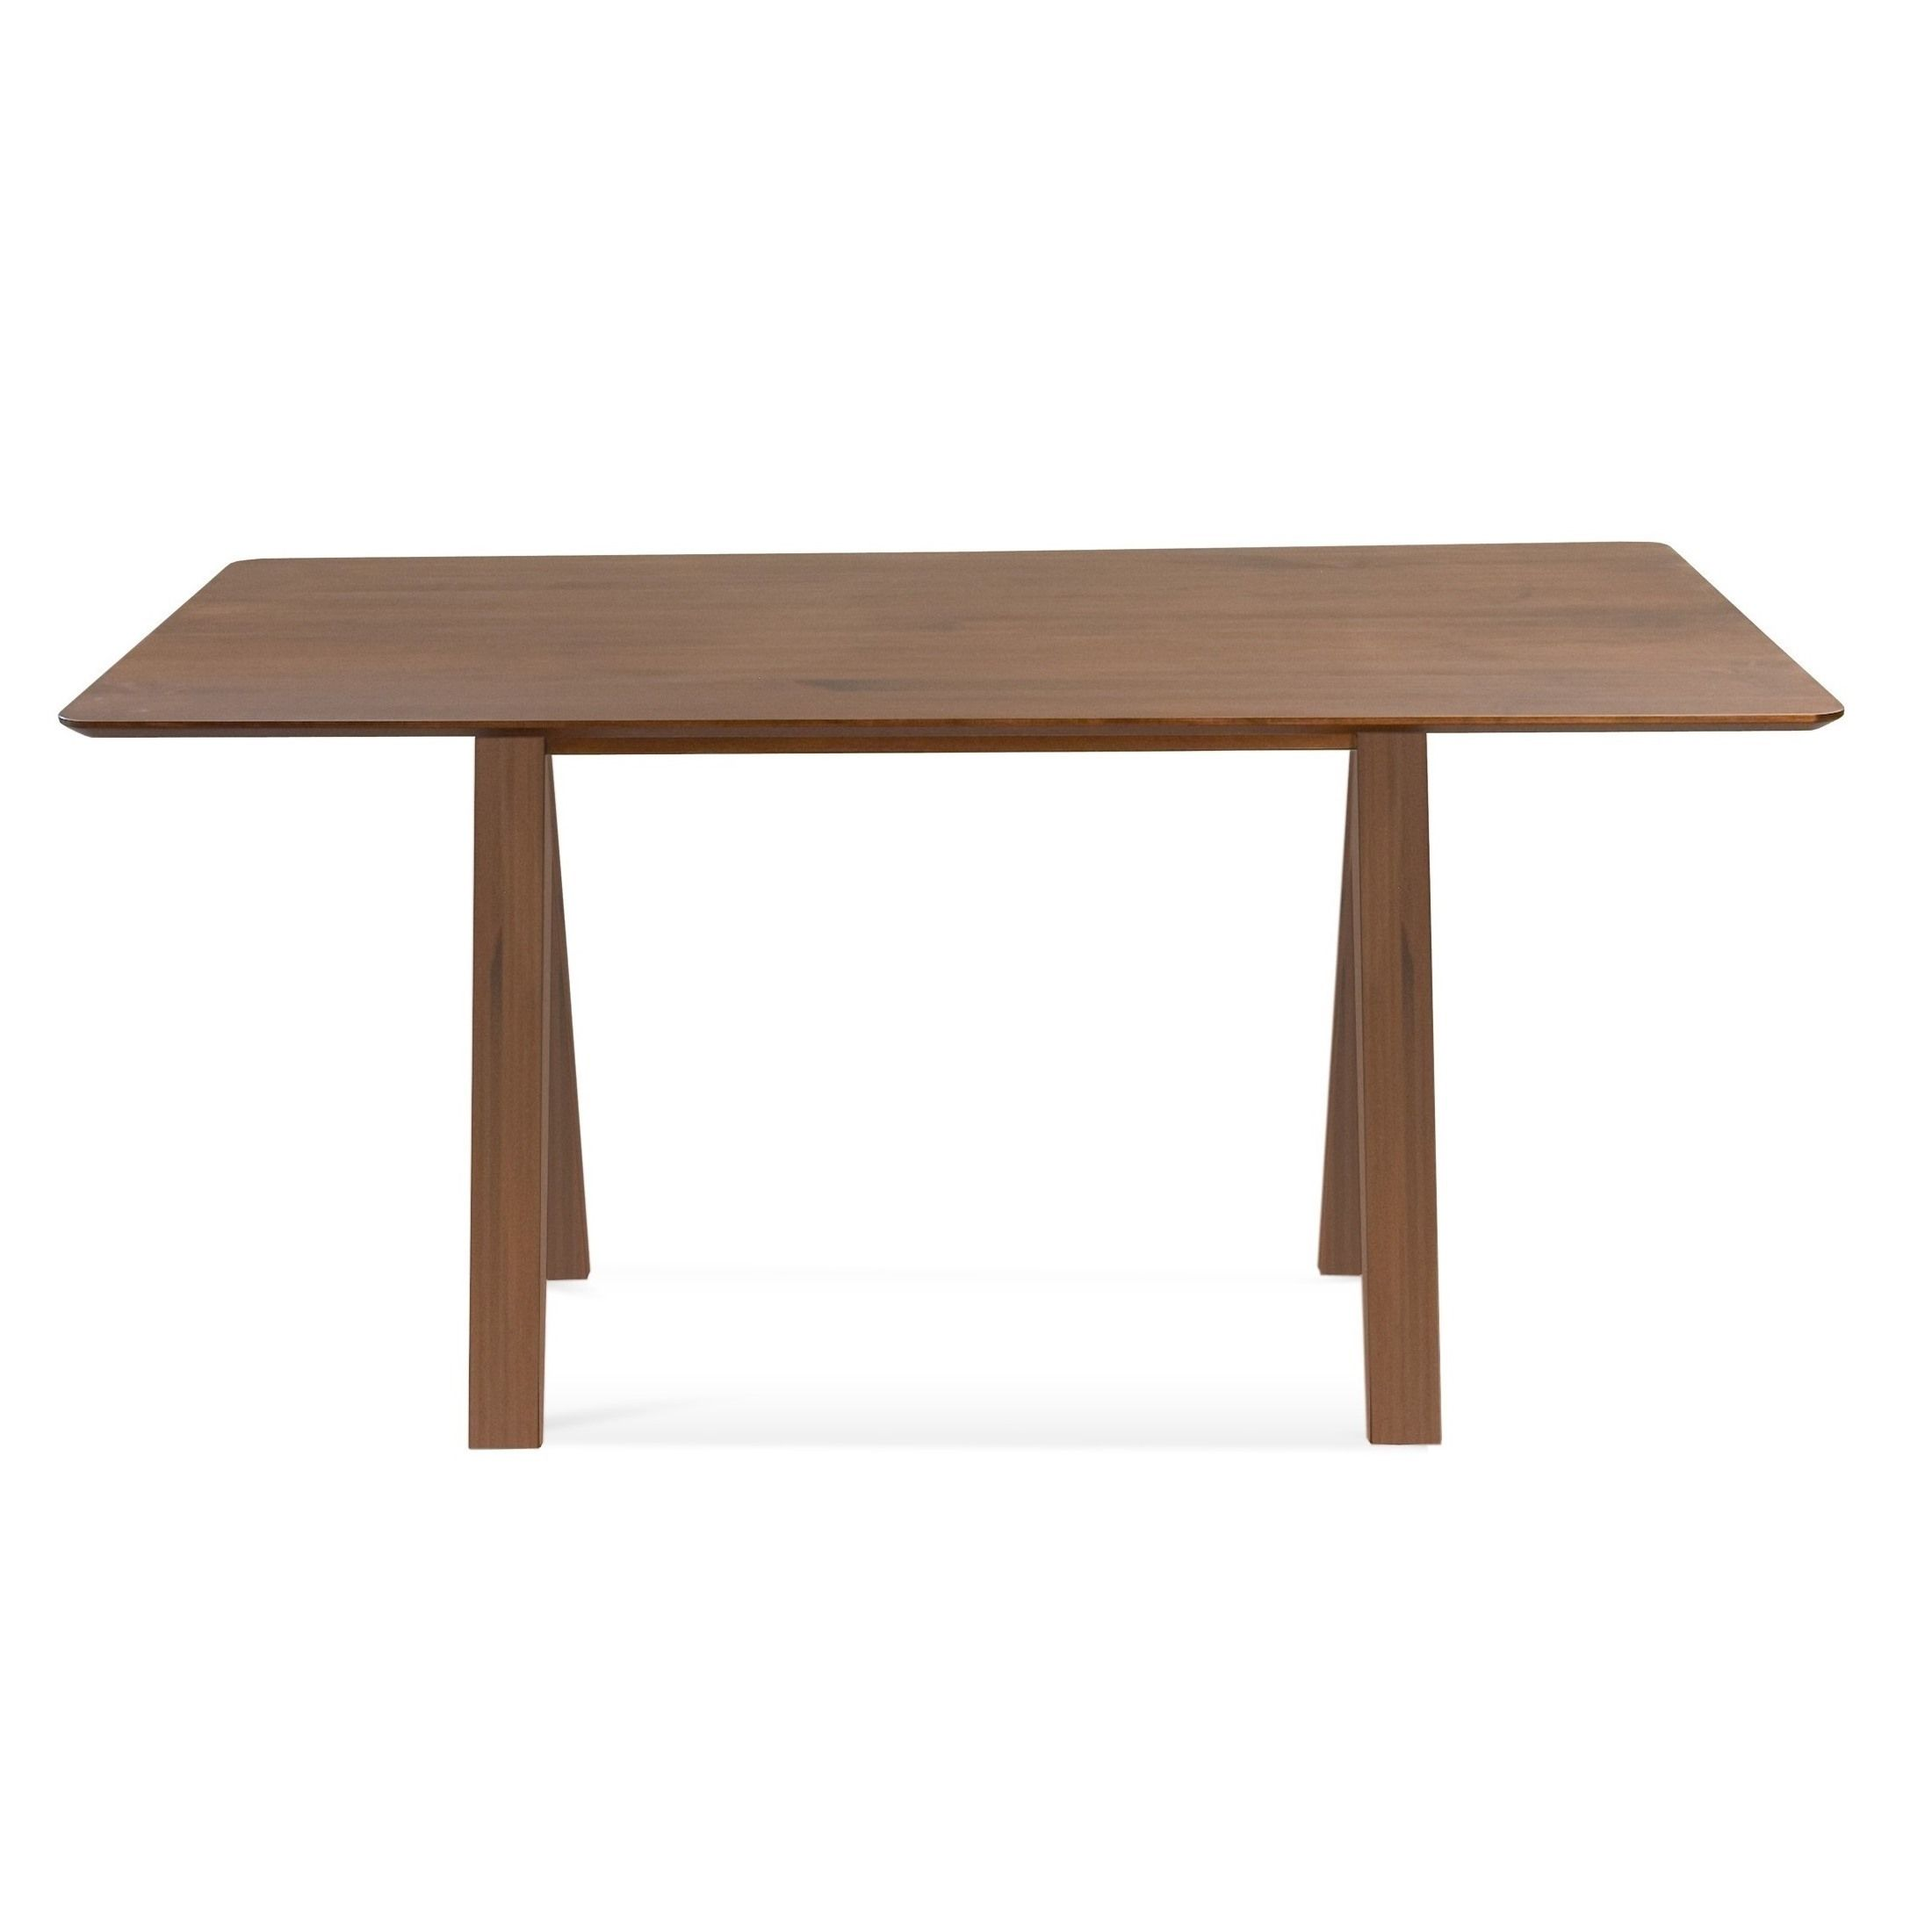 Saloom Soma 42 X 72 Rectangular Maple Strata Texture Top Dining Table In Chestnut Brown Finish